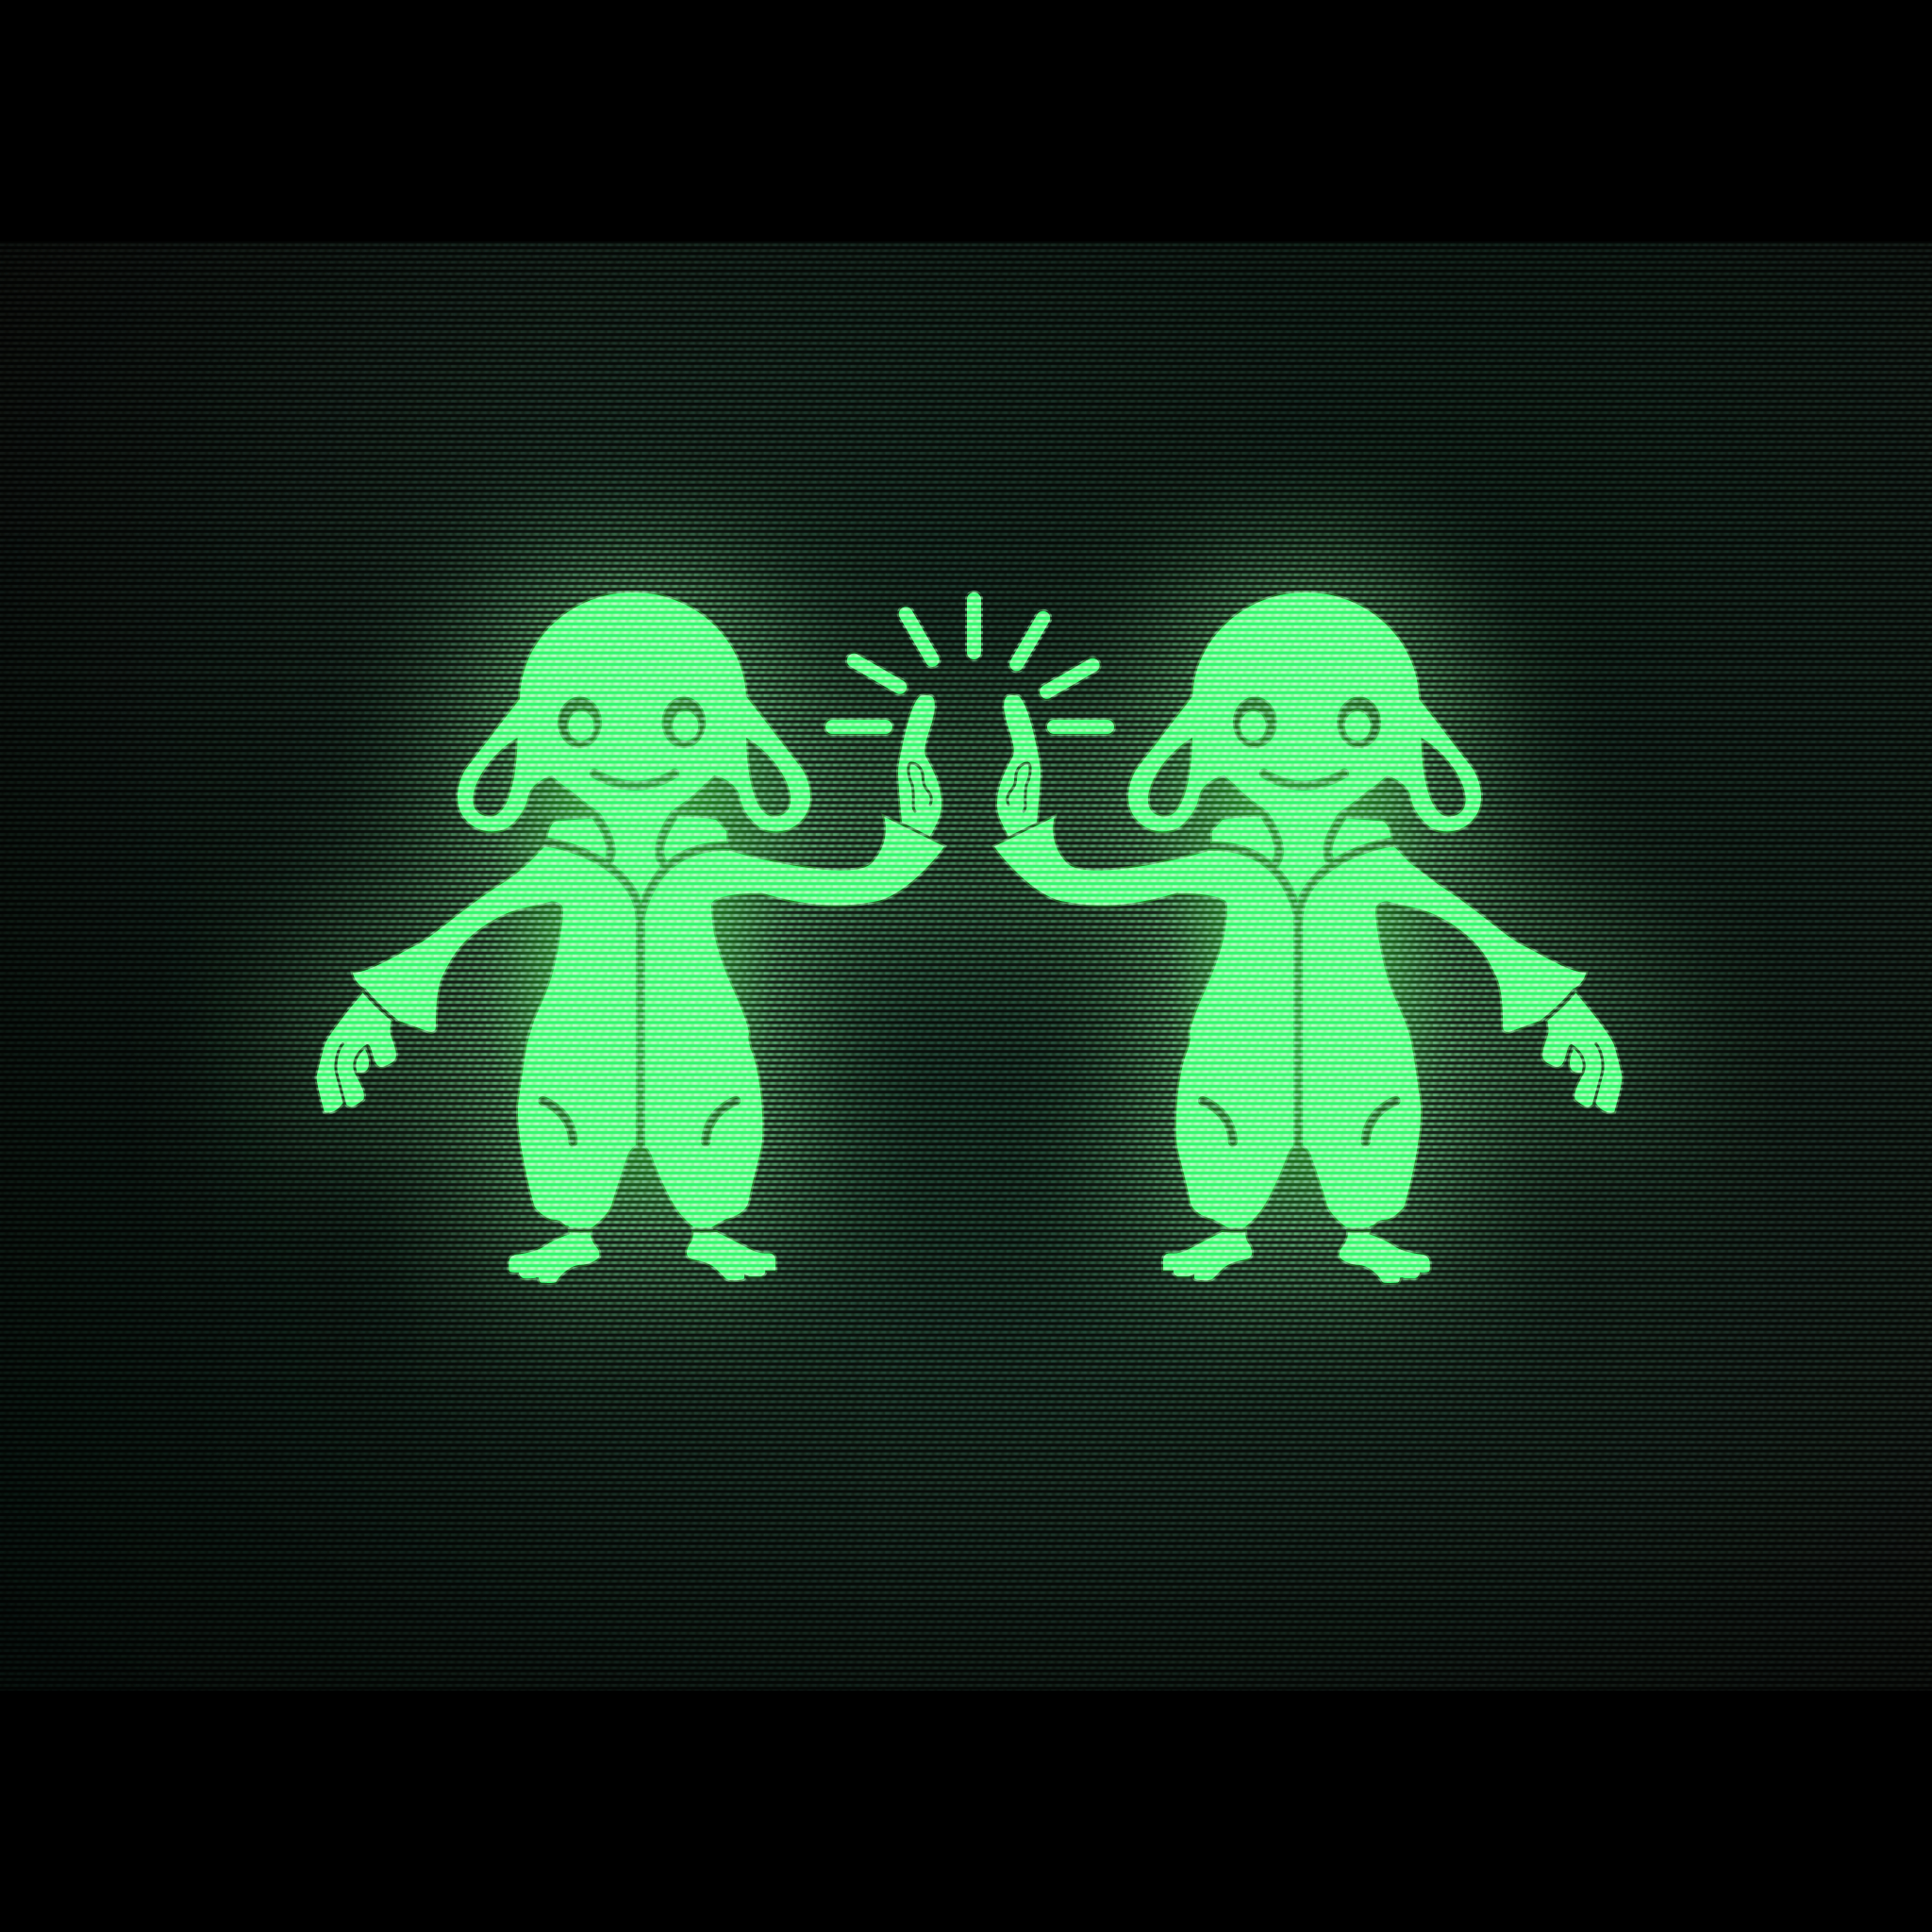 The screen depicts two bipedal lambs in jumpsuits high fiving each other